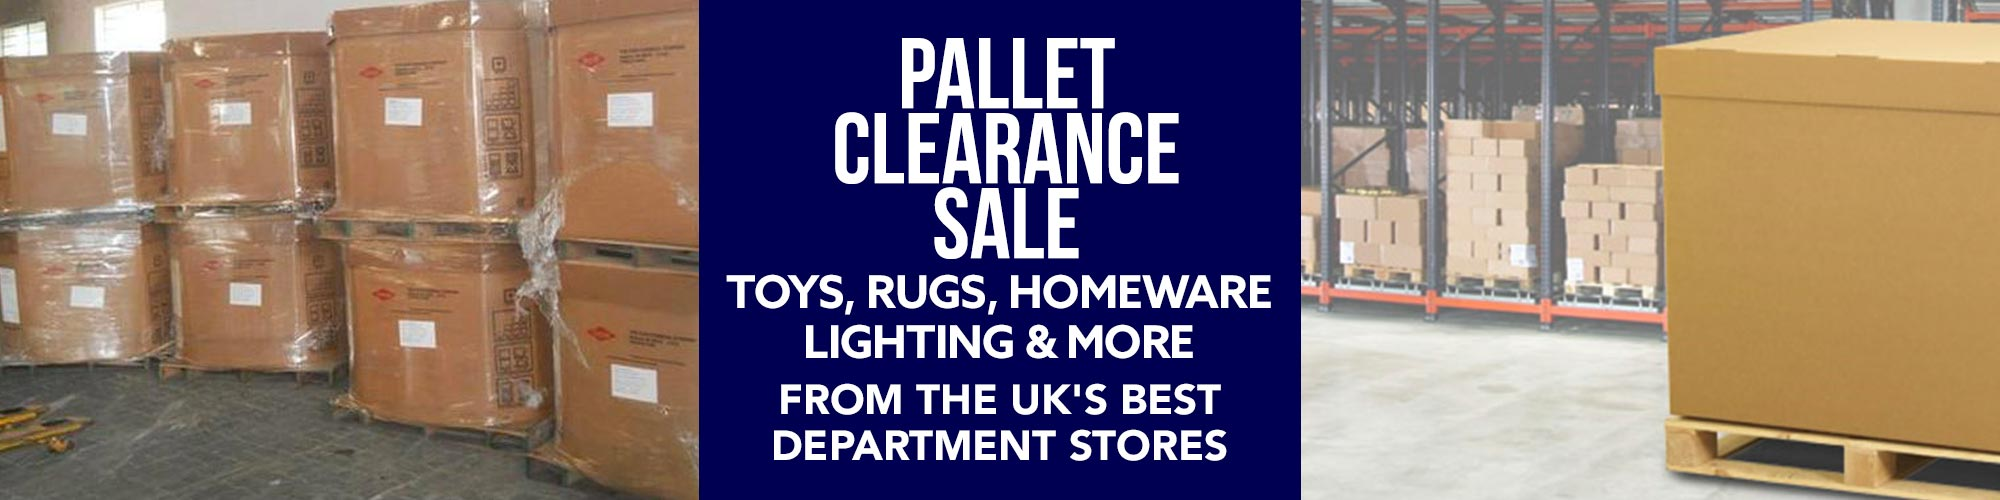 Pallet Clearance Sale, All Stock Must Go!